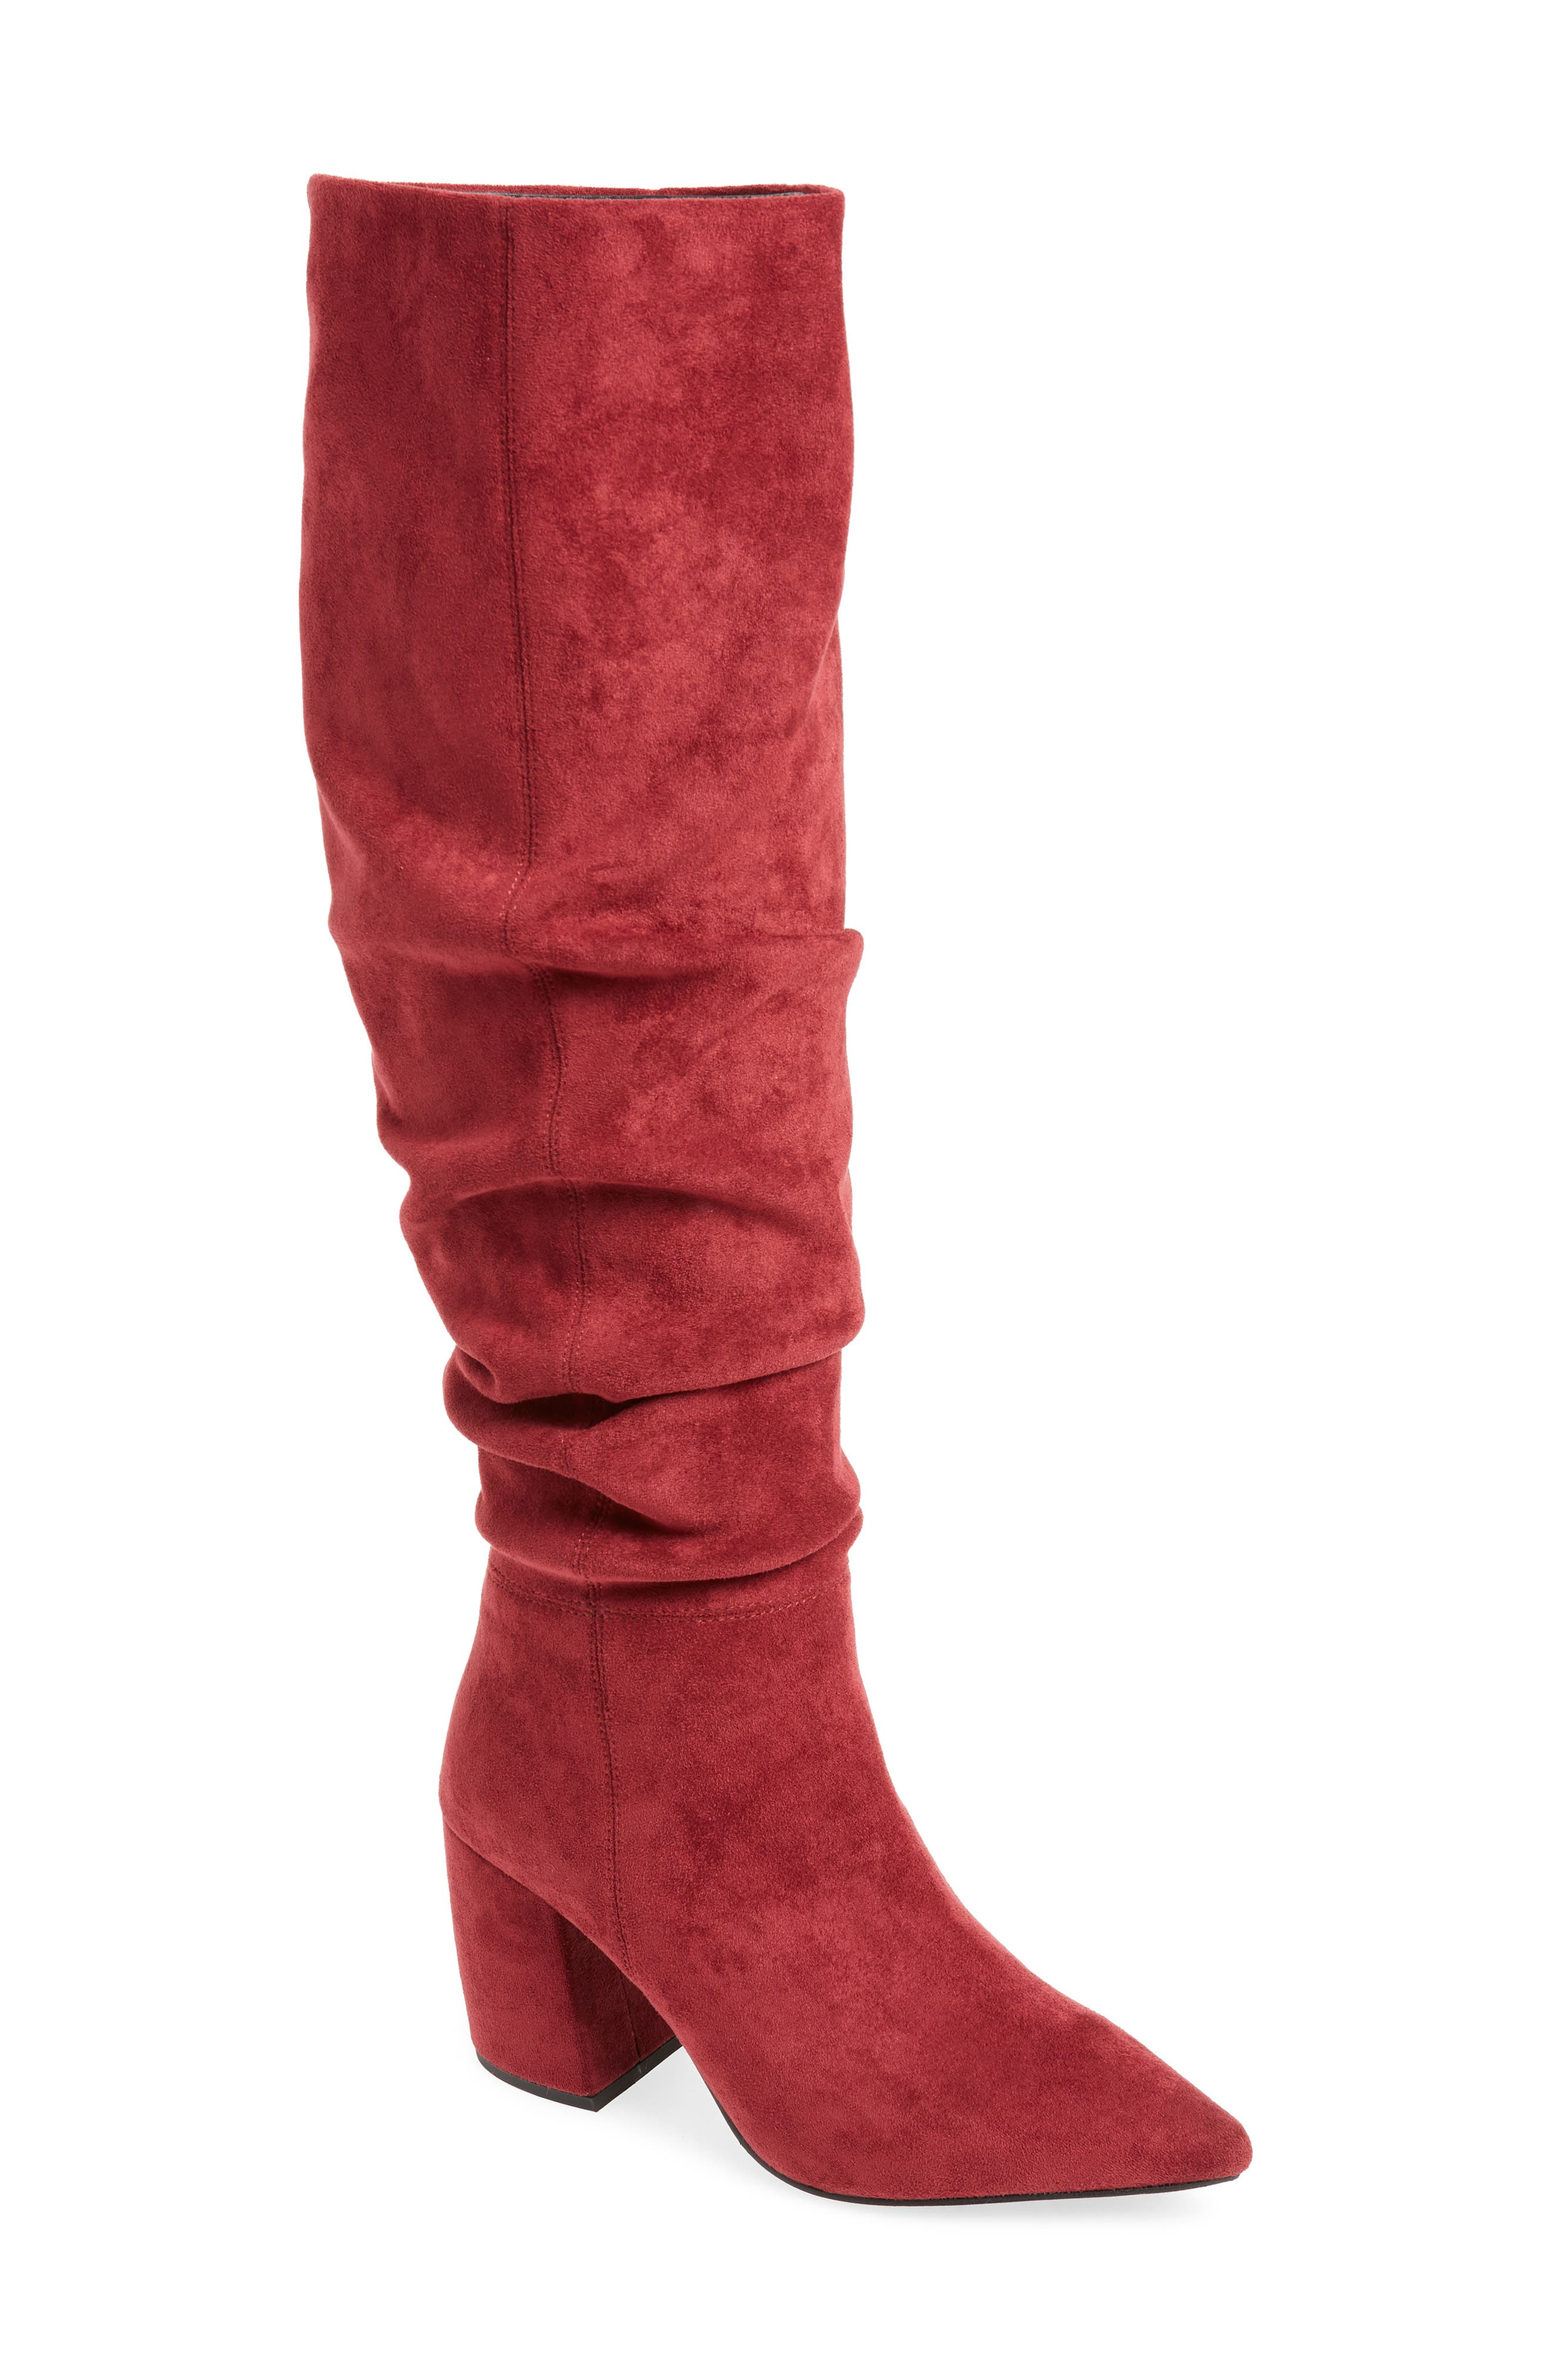 Final Slouch Over the Knee Boot,                             Main thumbnail 1, color,                             WINE SUEDE